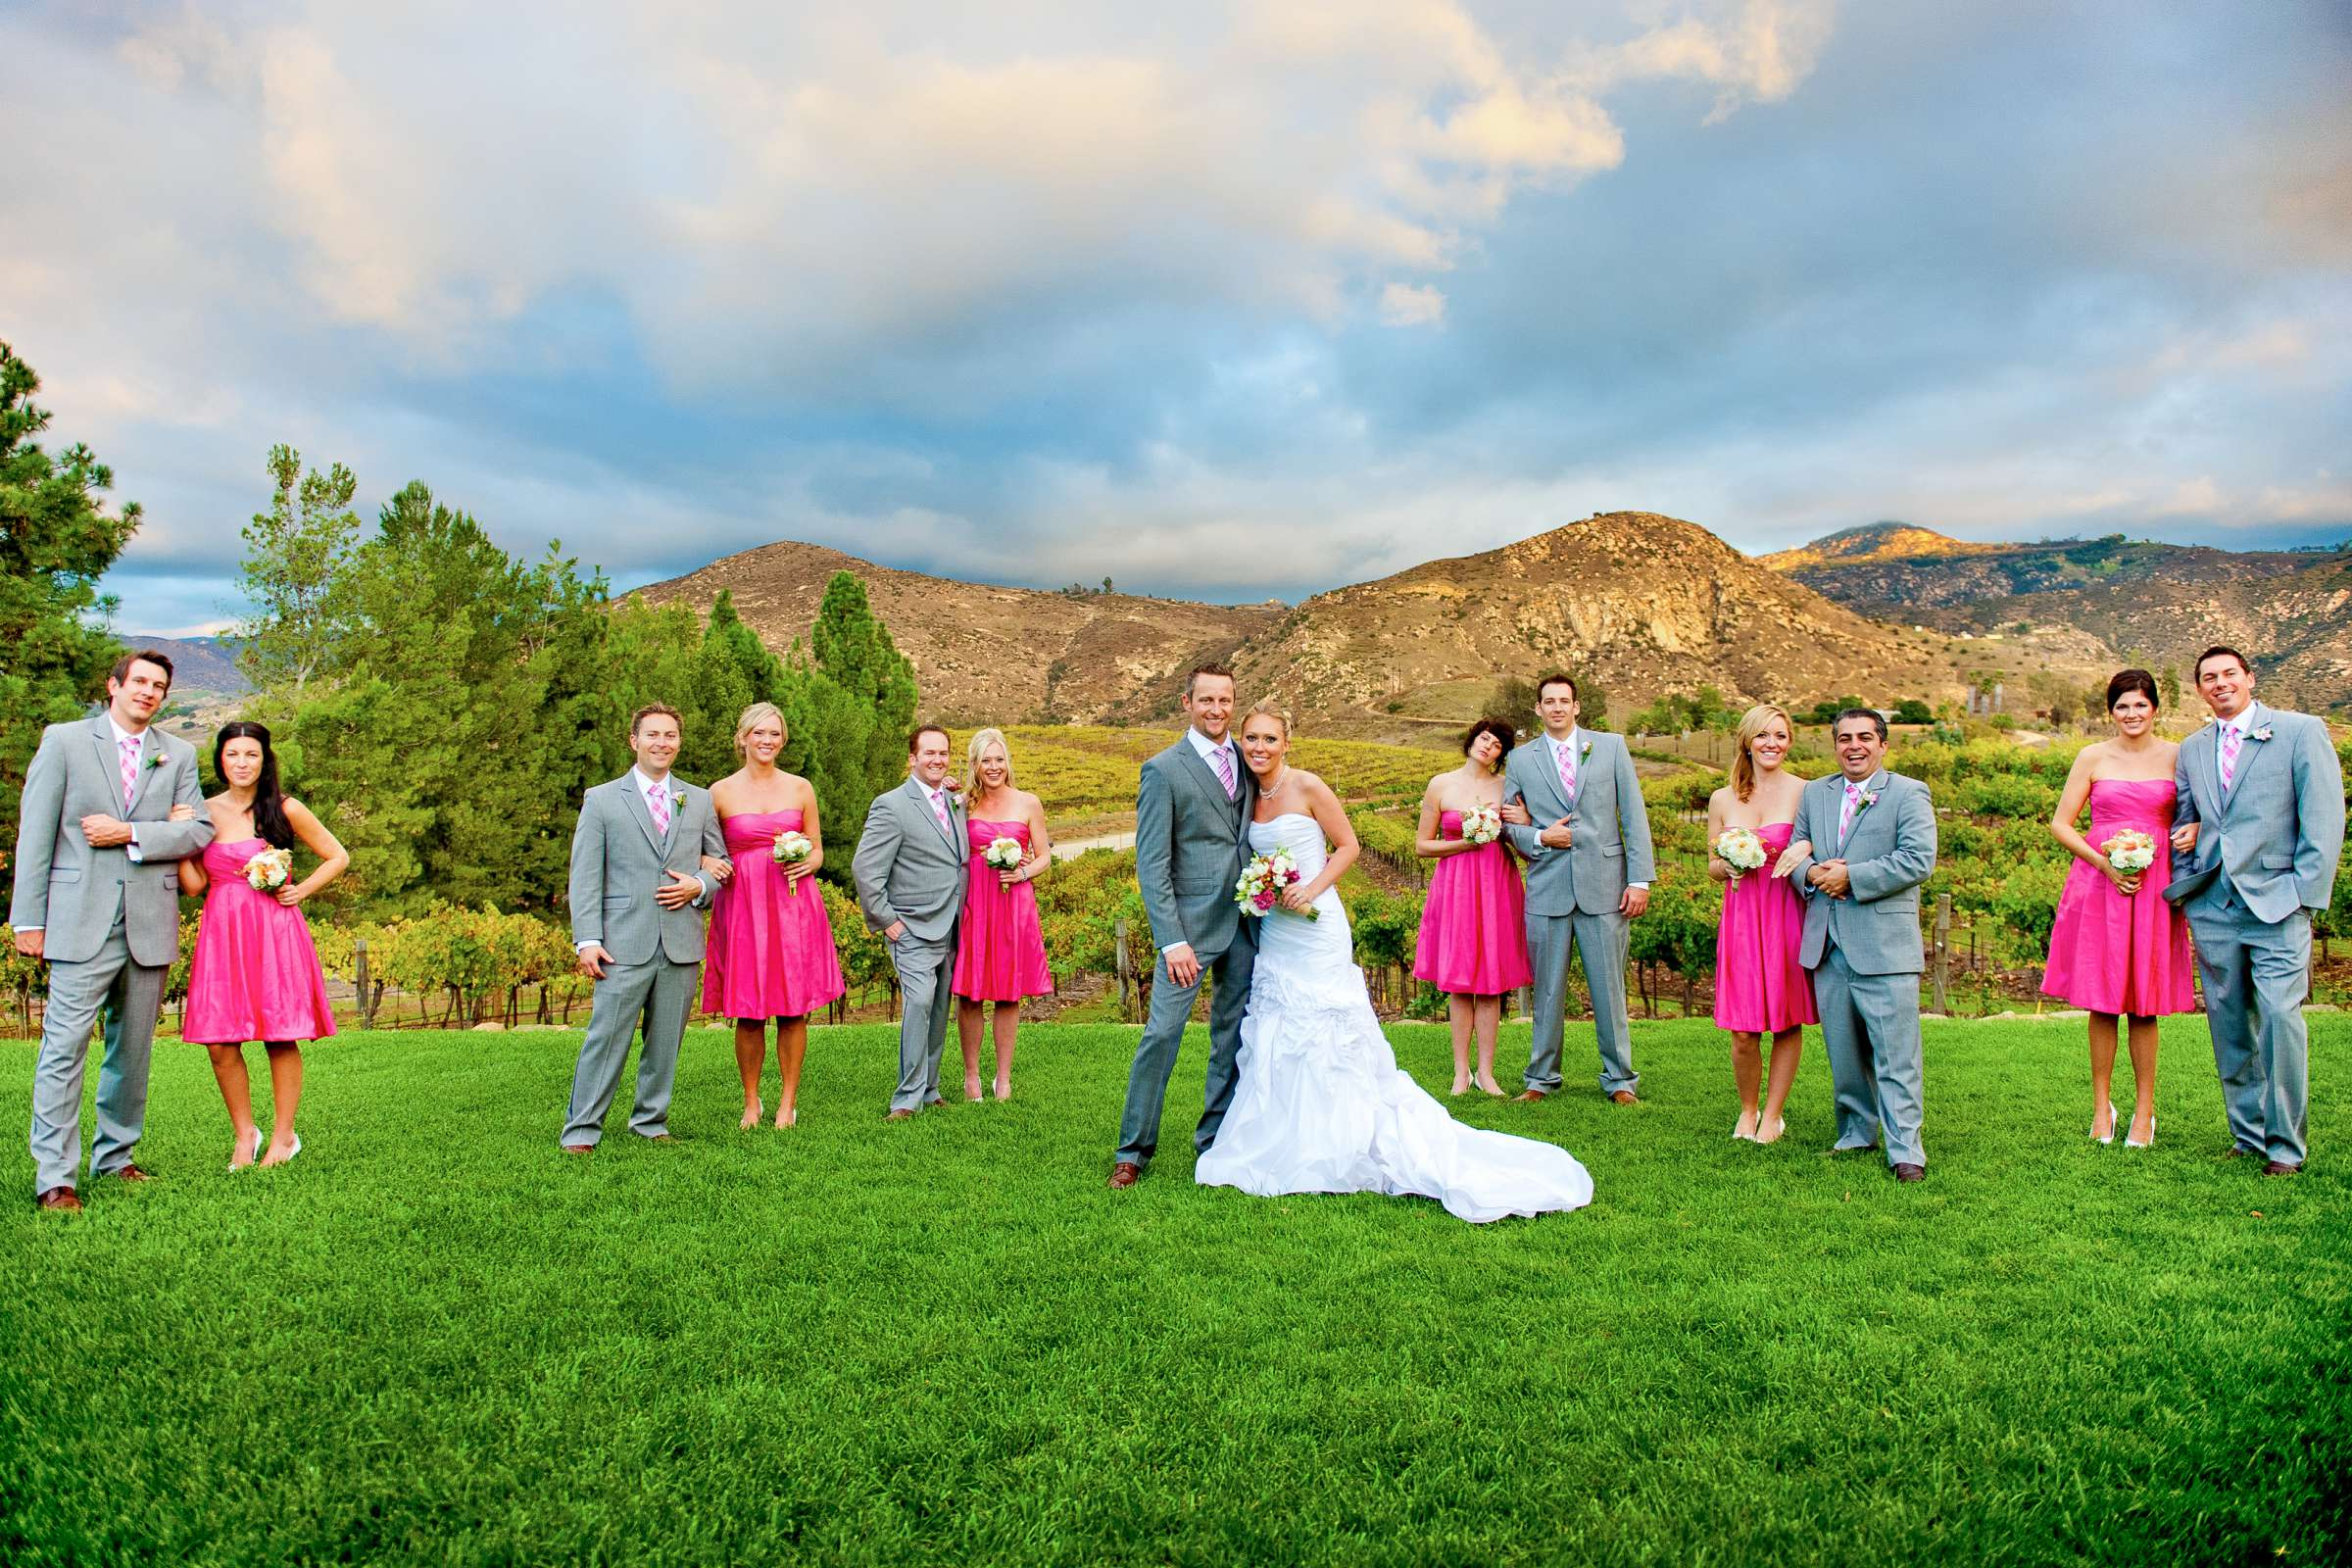 Orfila Vineyards Wedding, Mindy and Bryan Wedding Photo #3 by True Photography